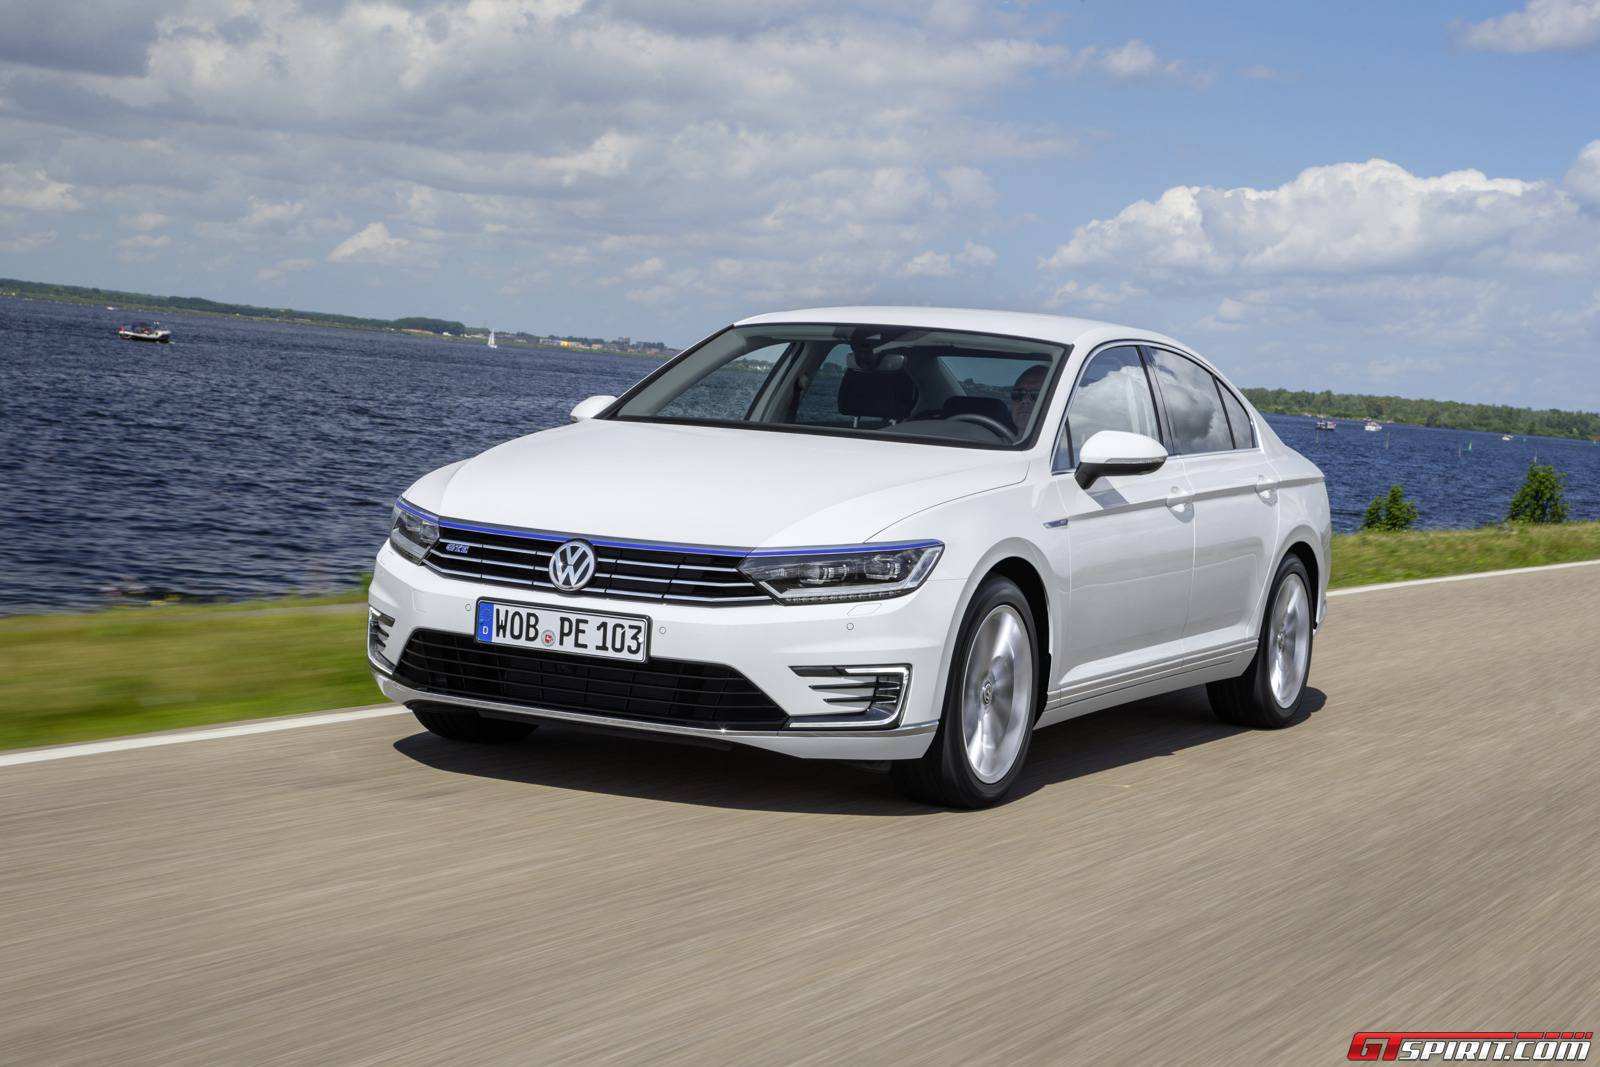 2016 volkswagen passat gte review gtspirit. Black Bedroom Furniture Sets. Home Design Ideas